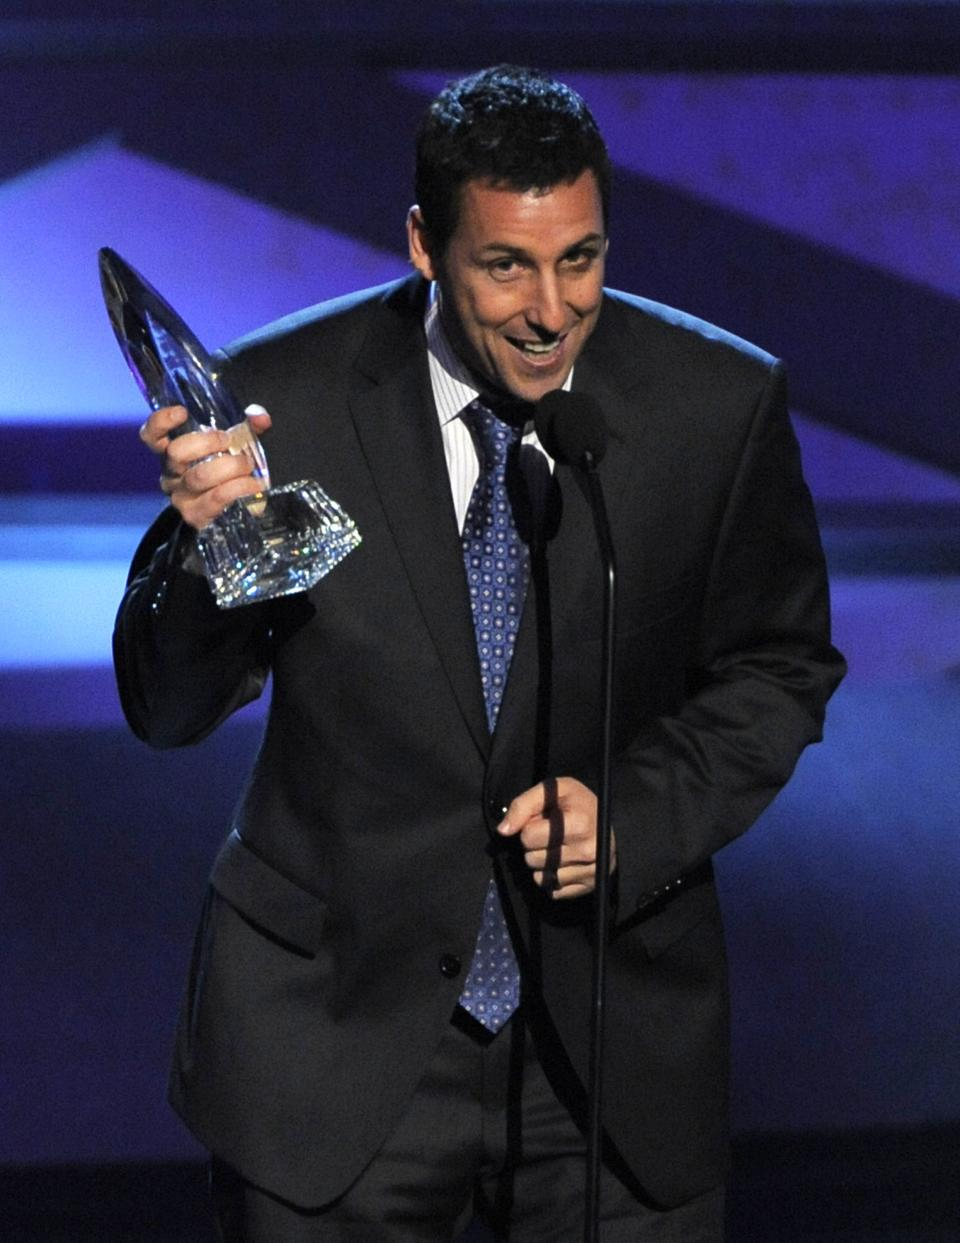 Adam Sandler accepts the award for favorite comedic star at the People's Choice Awards on Wednesday, Jan. 5, 2011, in Los Angeles. (AP Photo/Chris Pizzello)